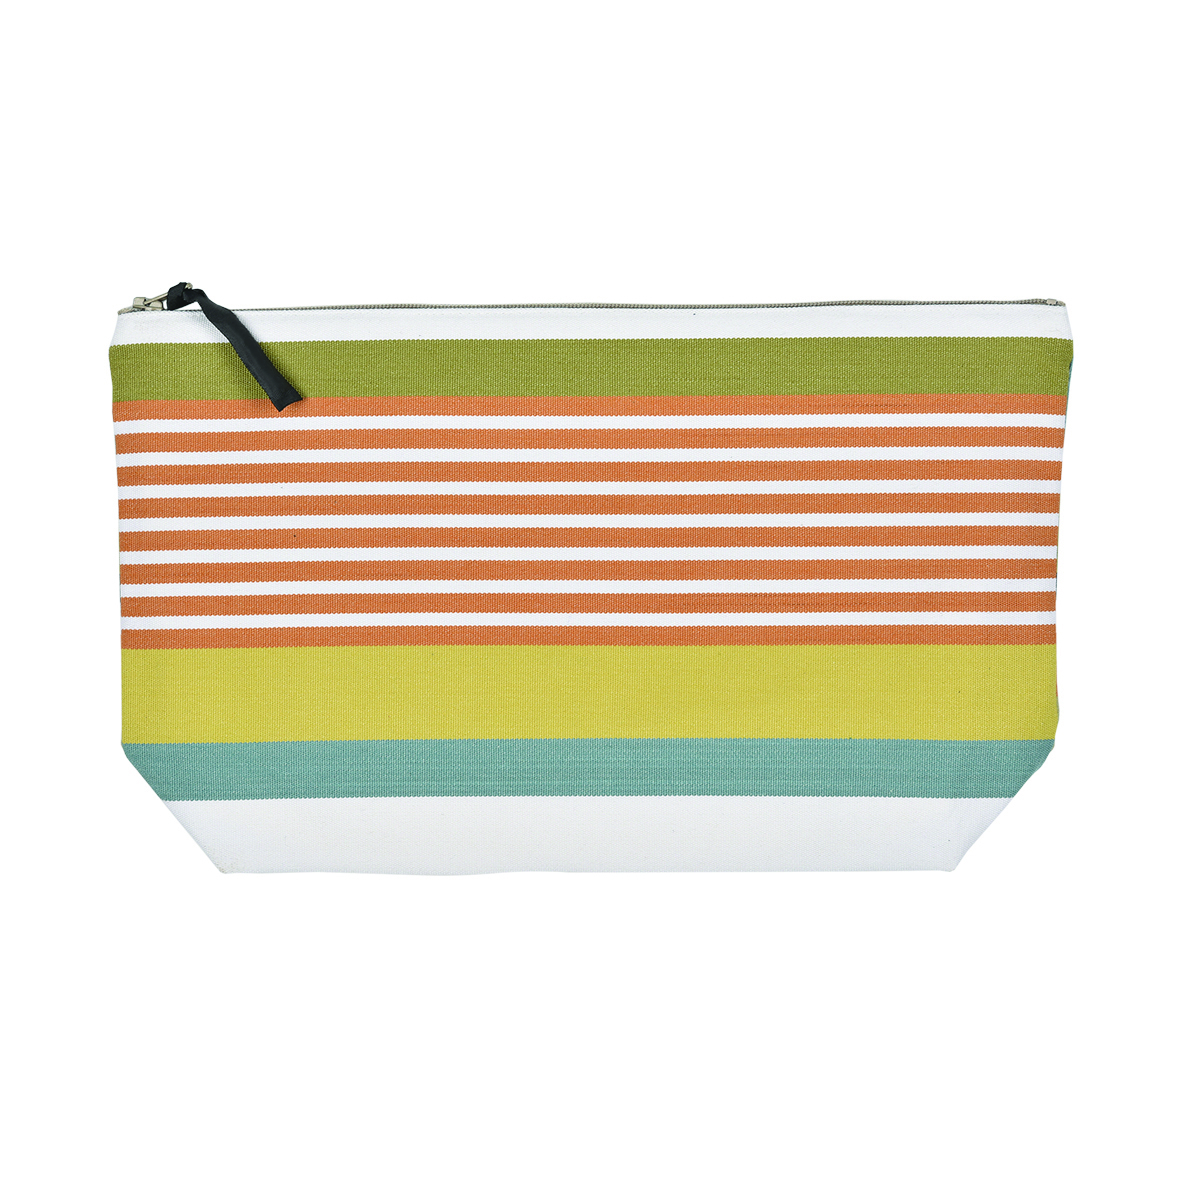 Biarritz Toiletry Bag